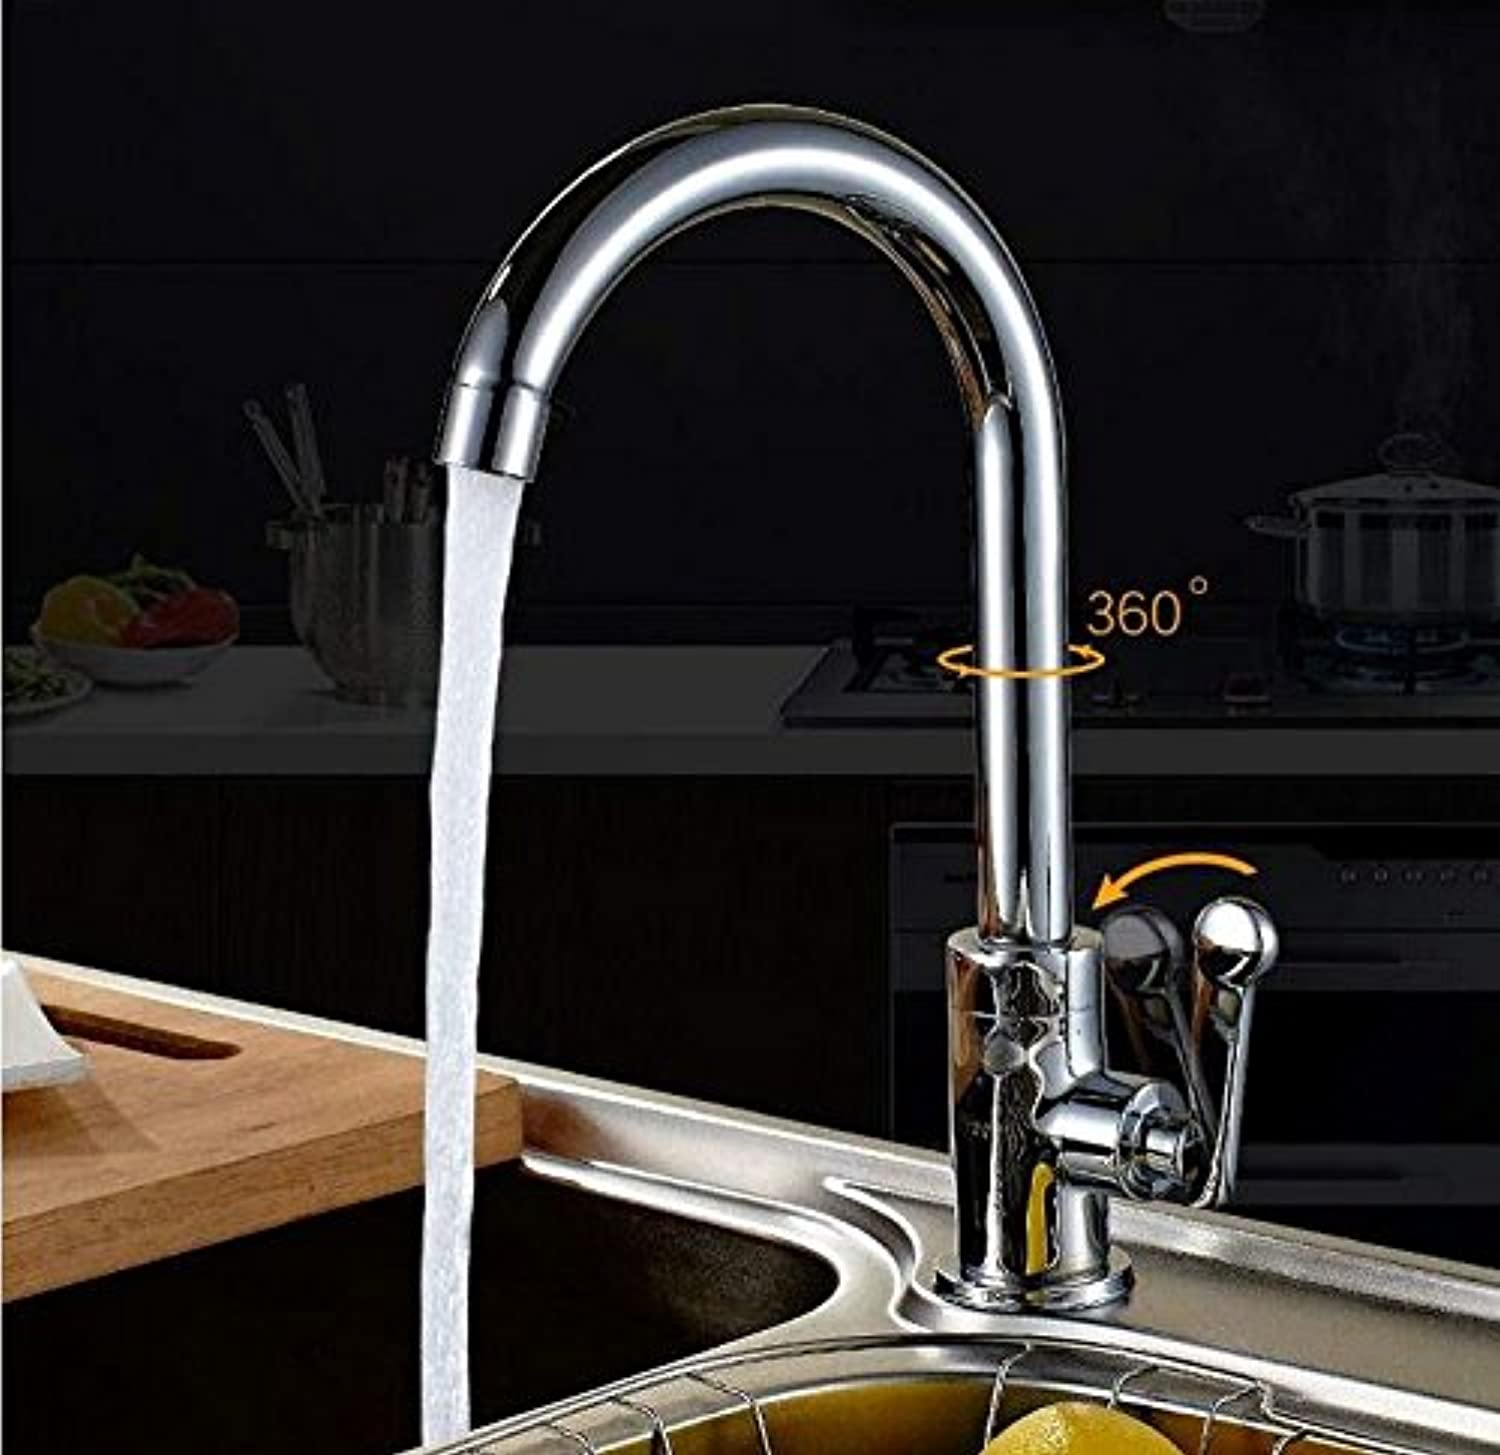 Lpophy Bathroom Sink Mixer Taps Faucet Bath Waterfall Cold and Hot Water Tap for Washroom Bathroom and Kitchen Copper Single Single Hole Single Cold Stainless Steel